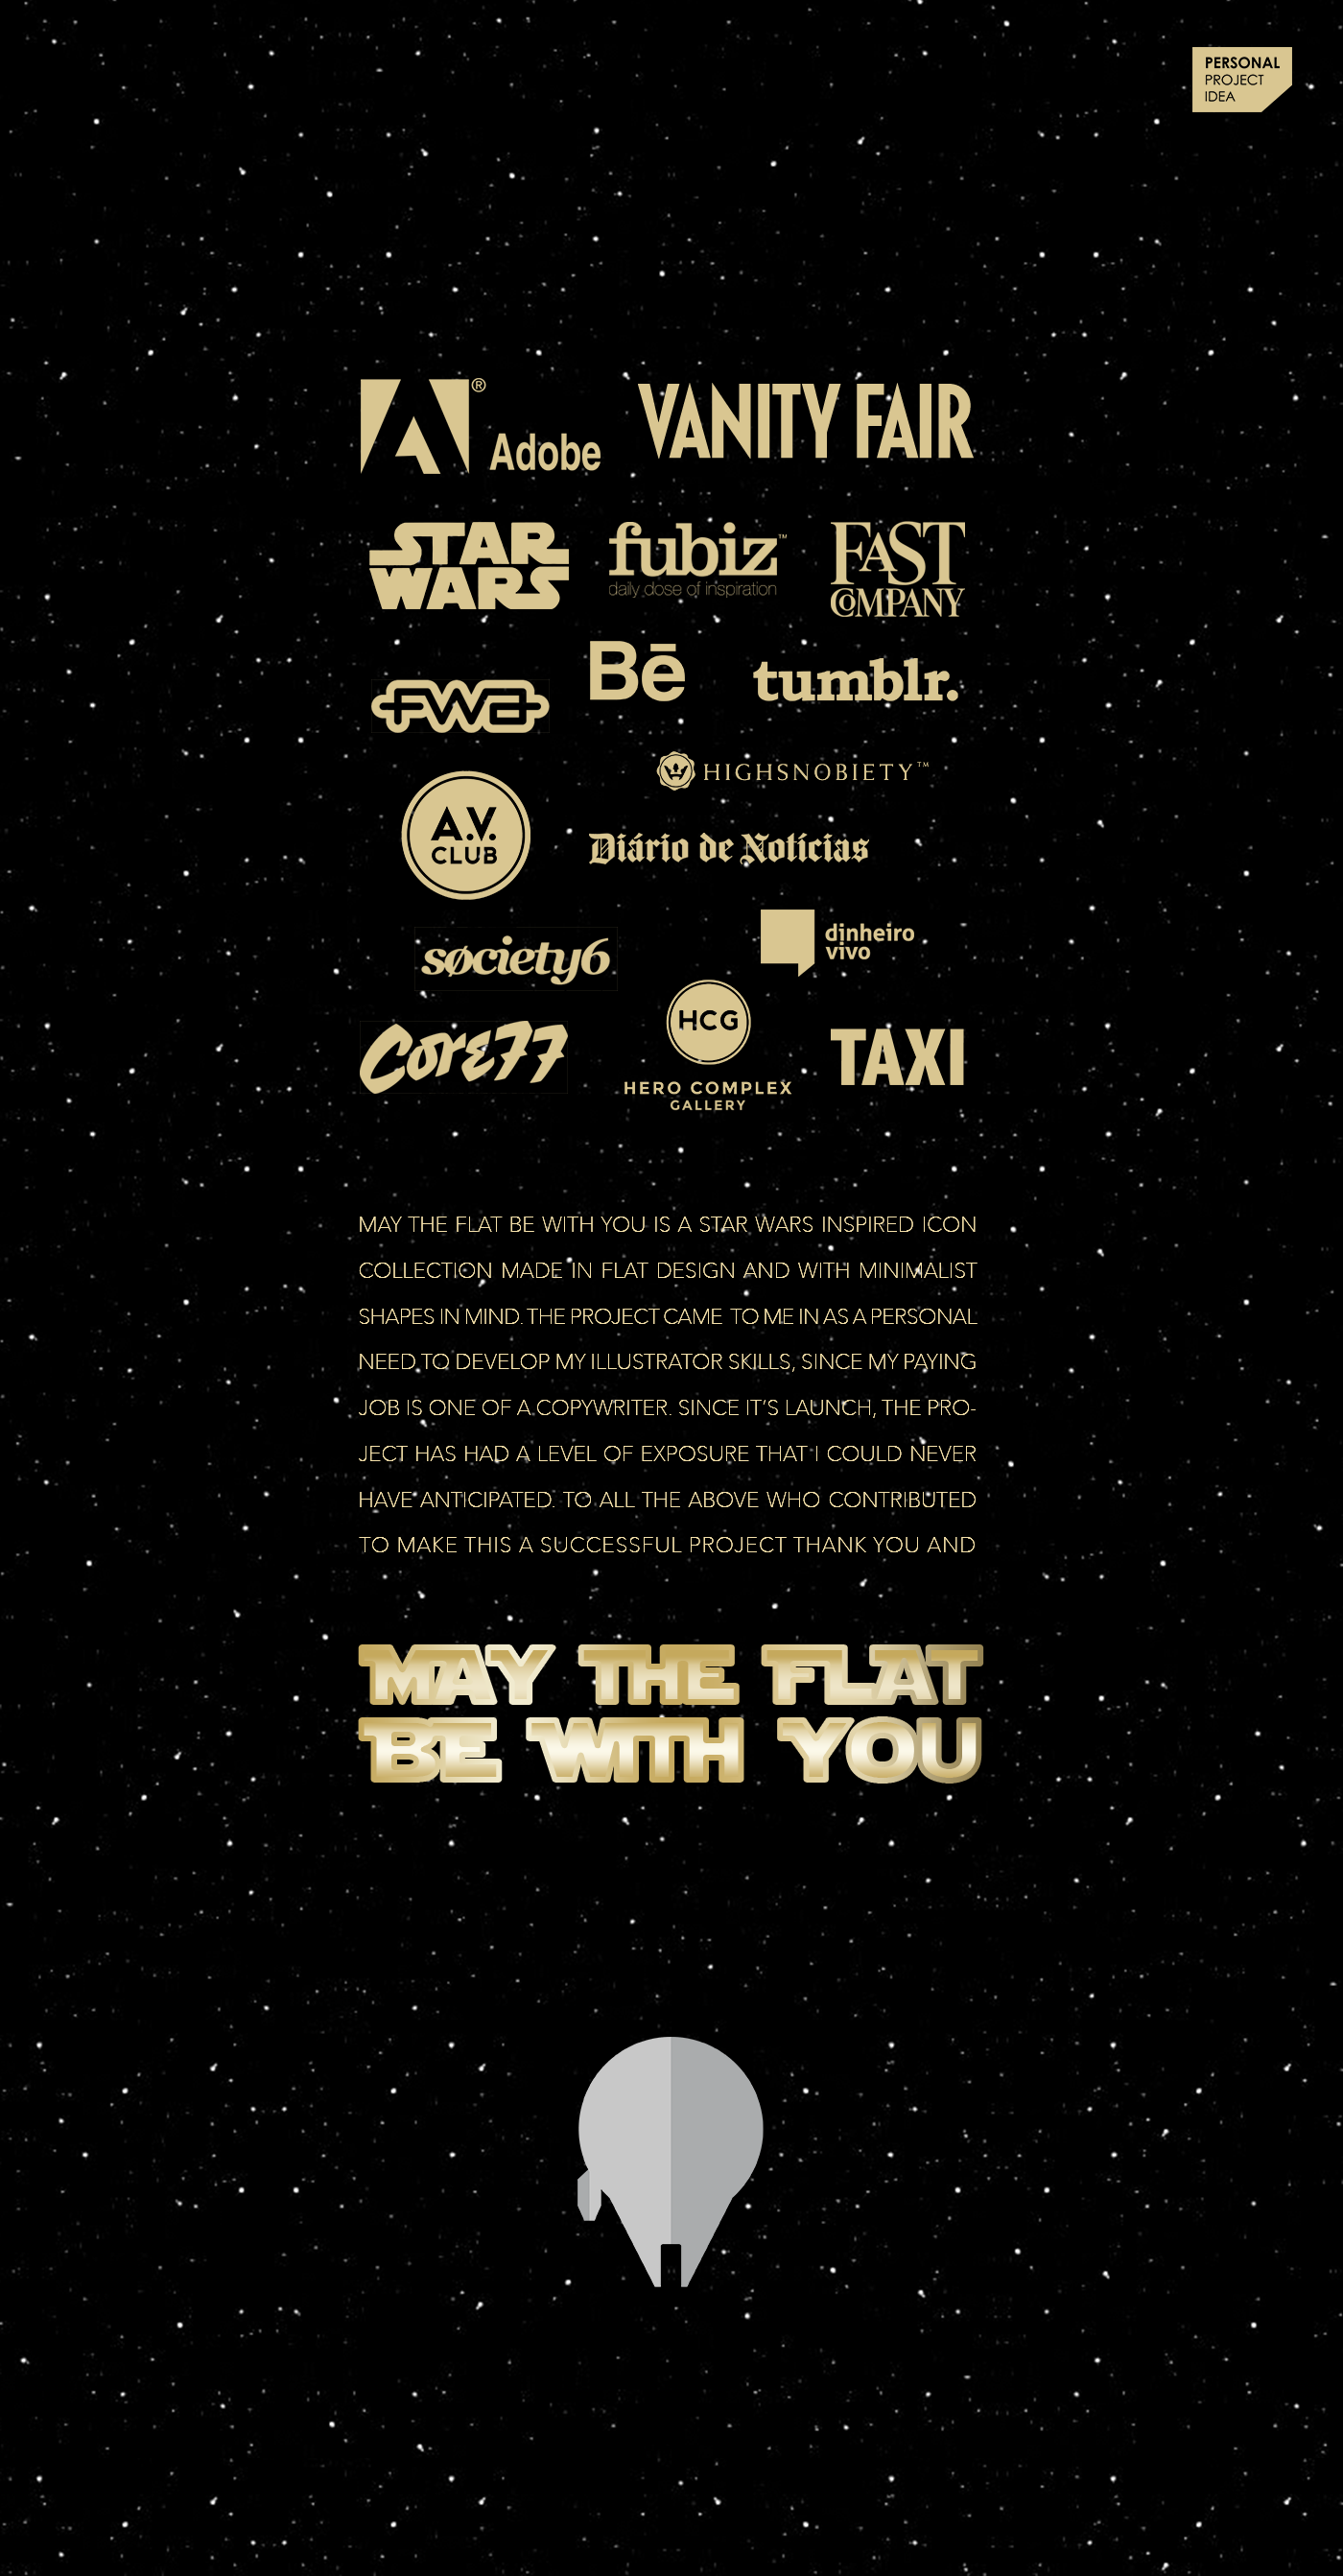 Adobe Portfolio Starwars flat design Long shadow design icons darth vader may the force Be with you flat icons creativeflip face icons characters iconic